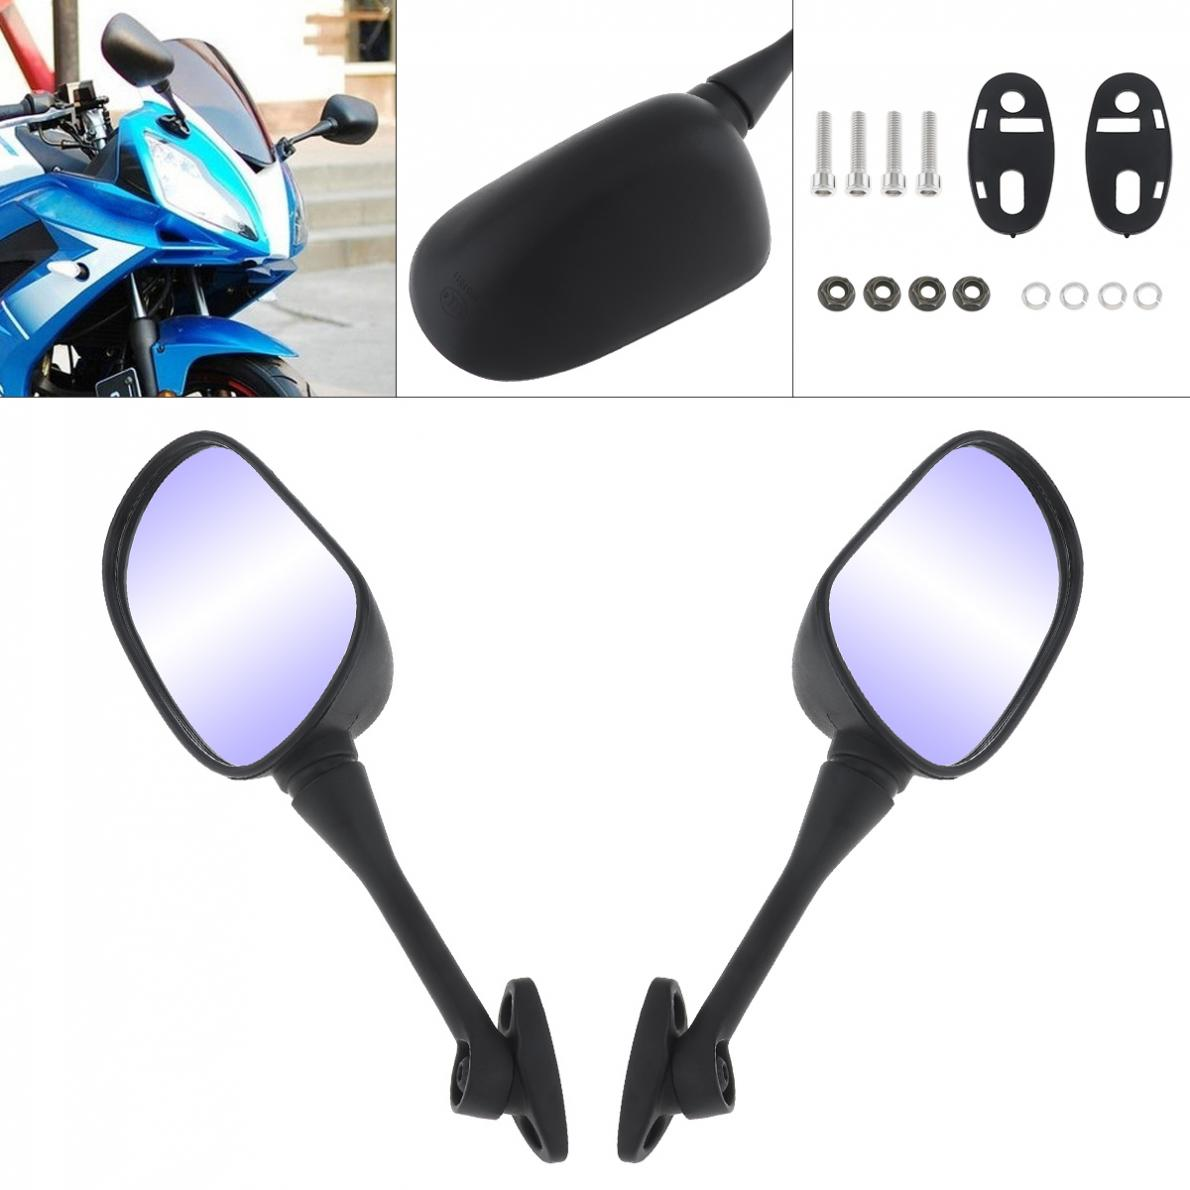 2x Motorcycle Rearview Side Mirrors For Honda CBR600RR CBR1000RR 2004-2007 Black